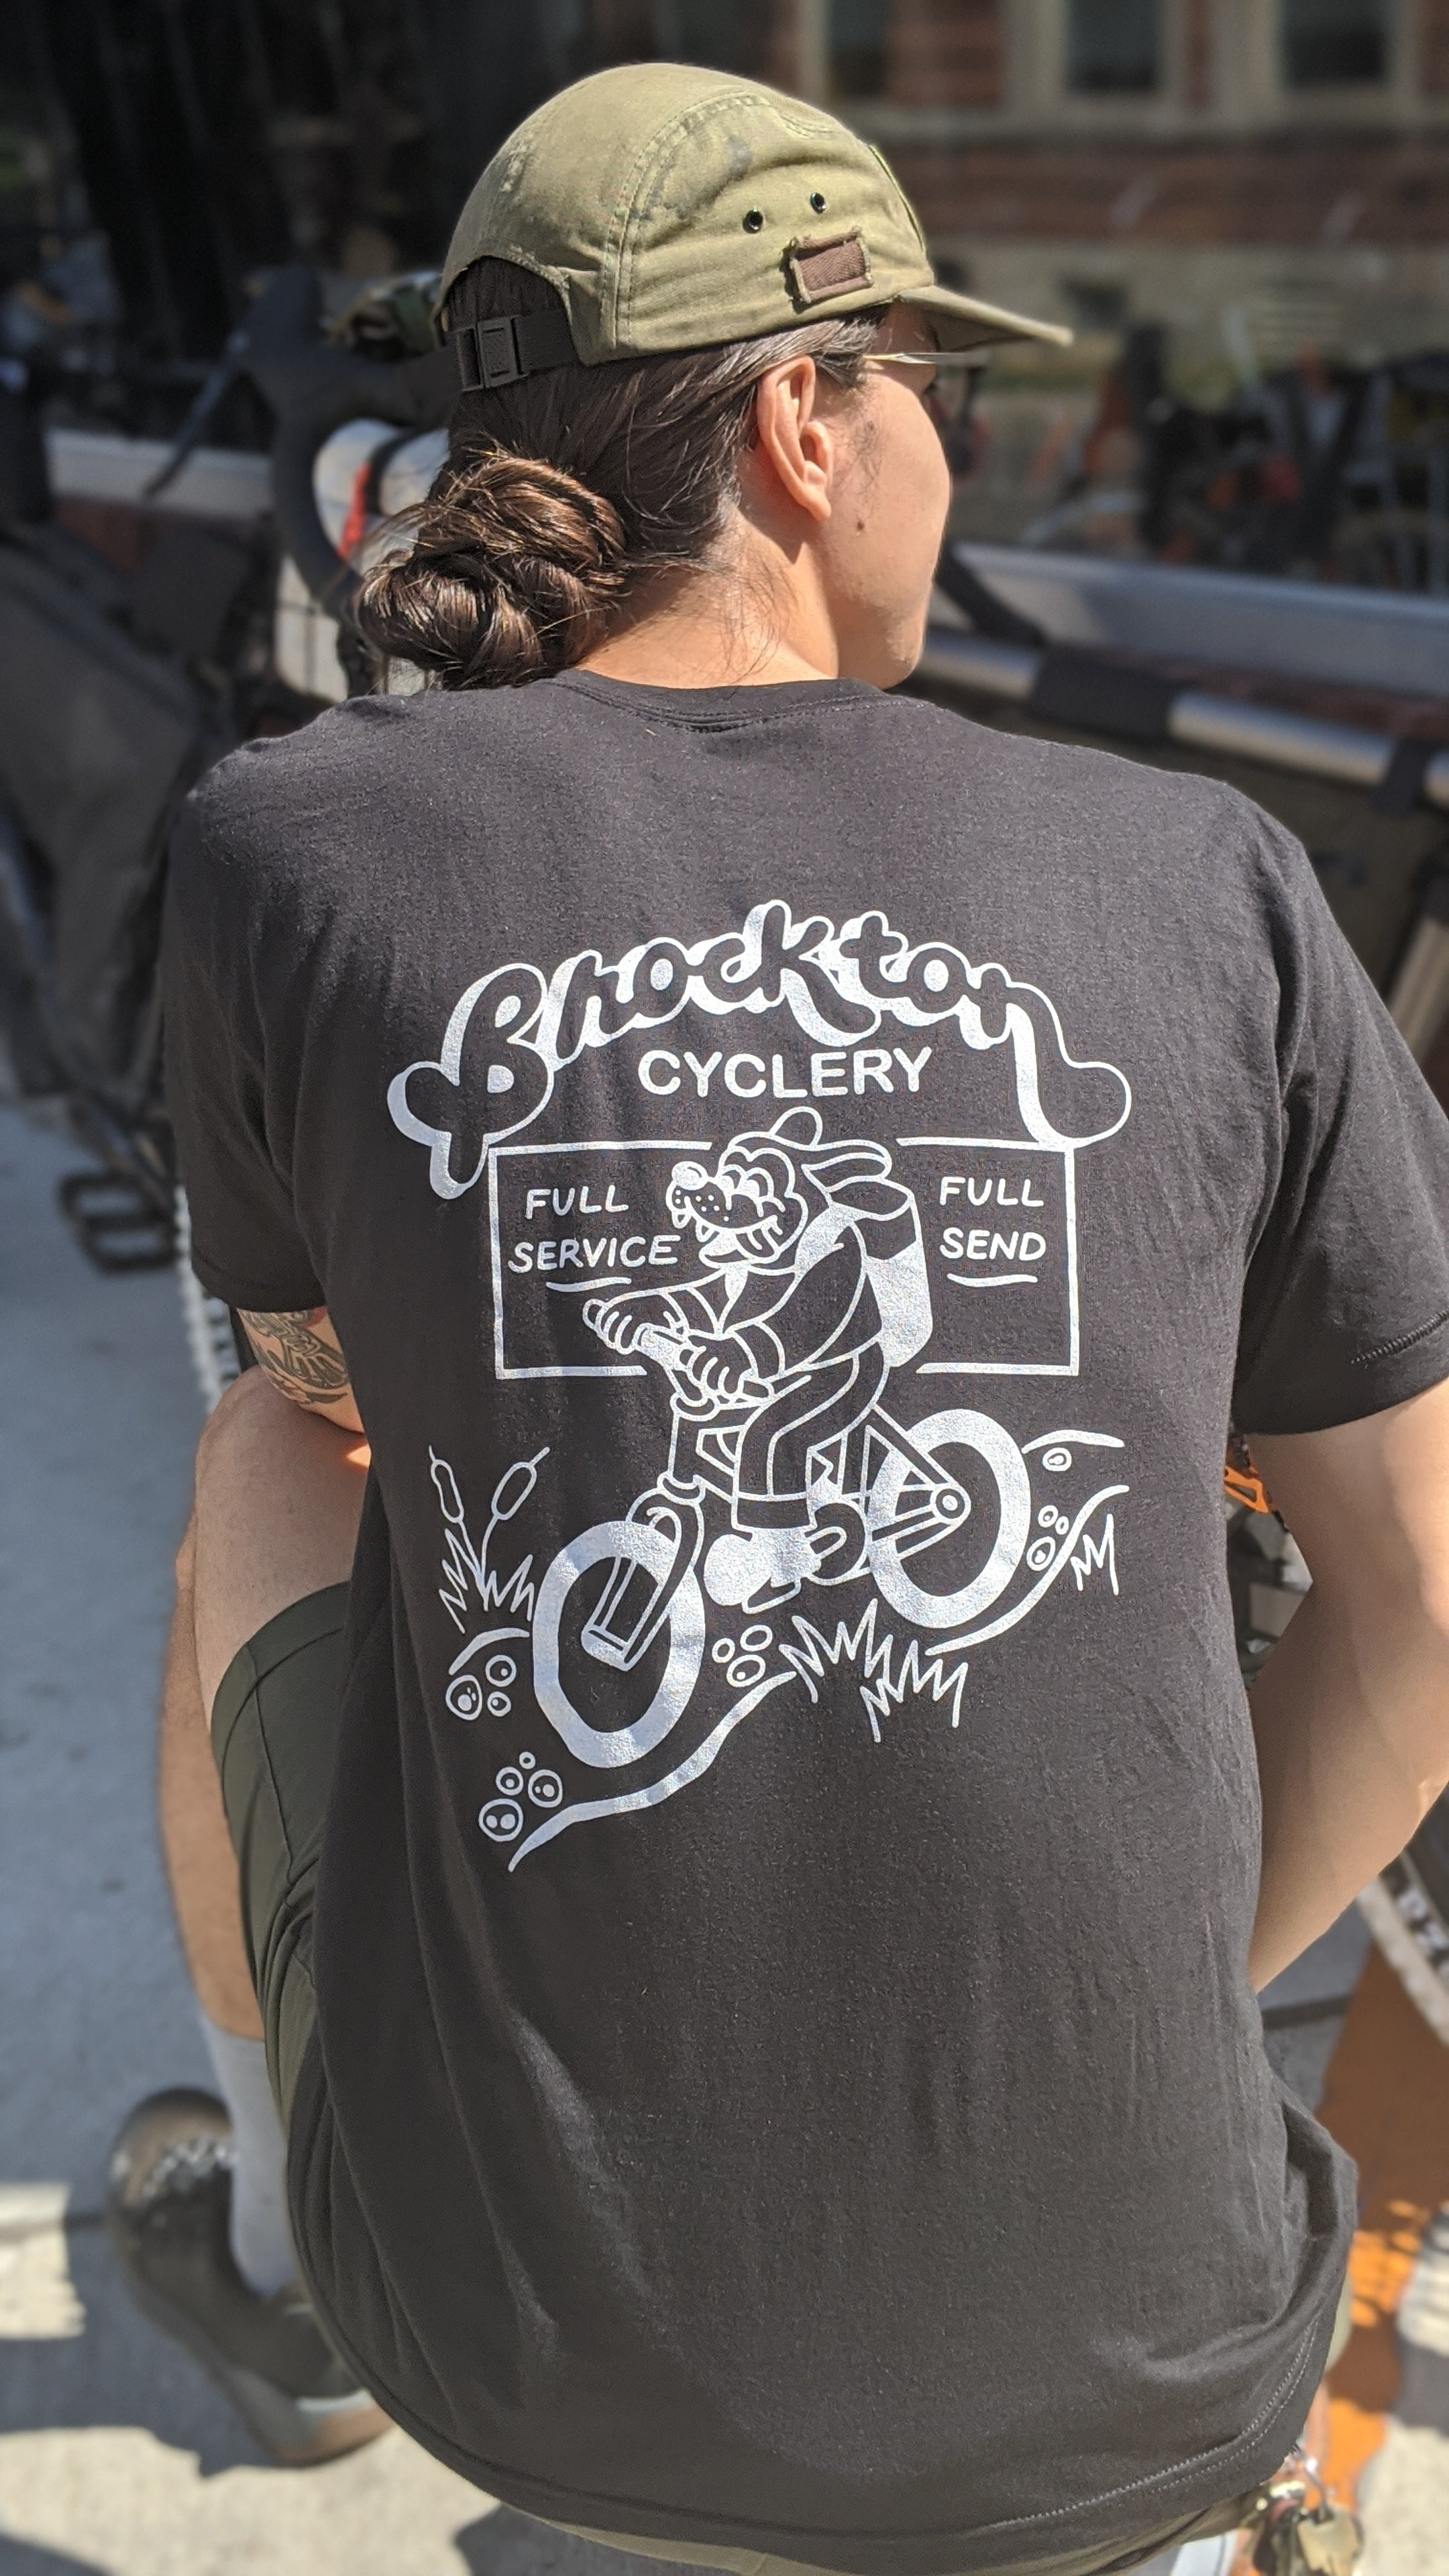 "Brockton Cyclery ""Full Service, Full Send"" T-Shirt"